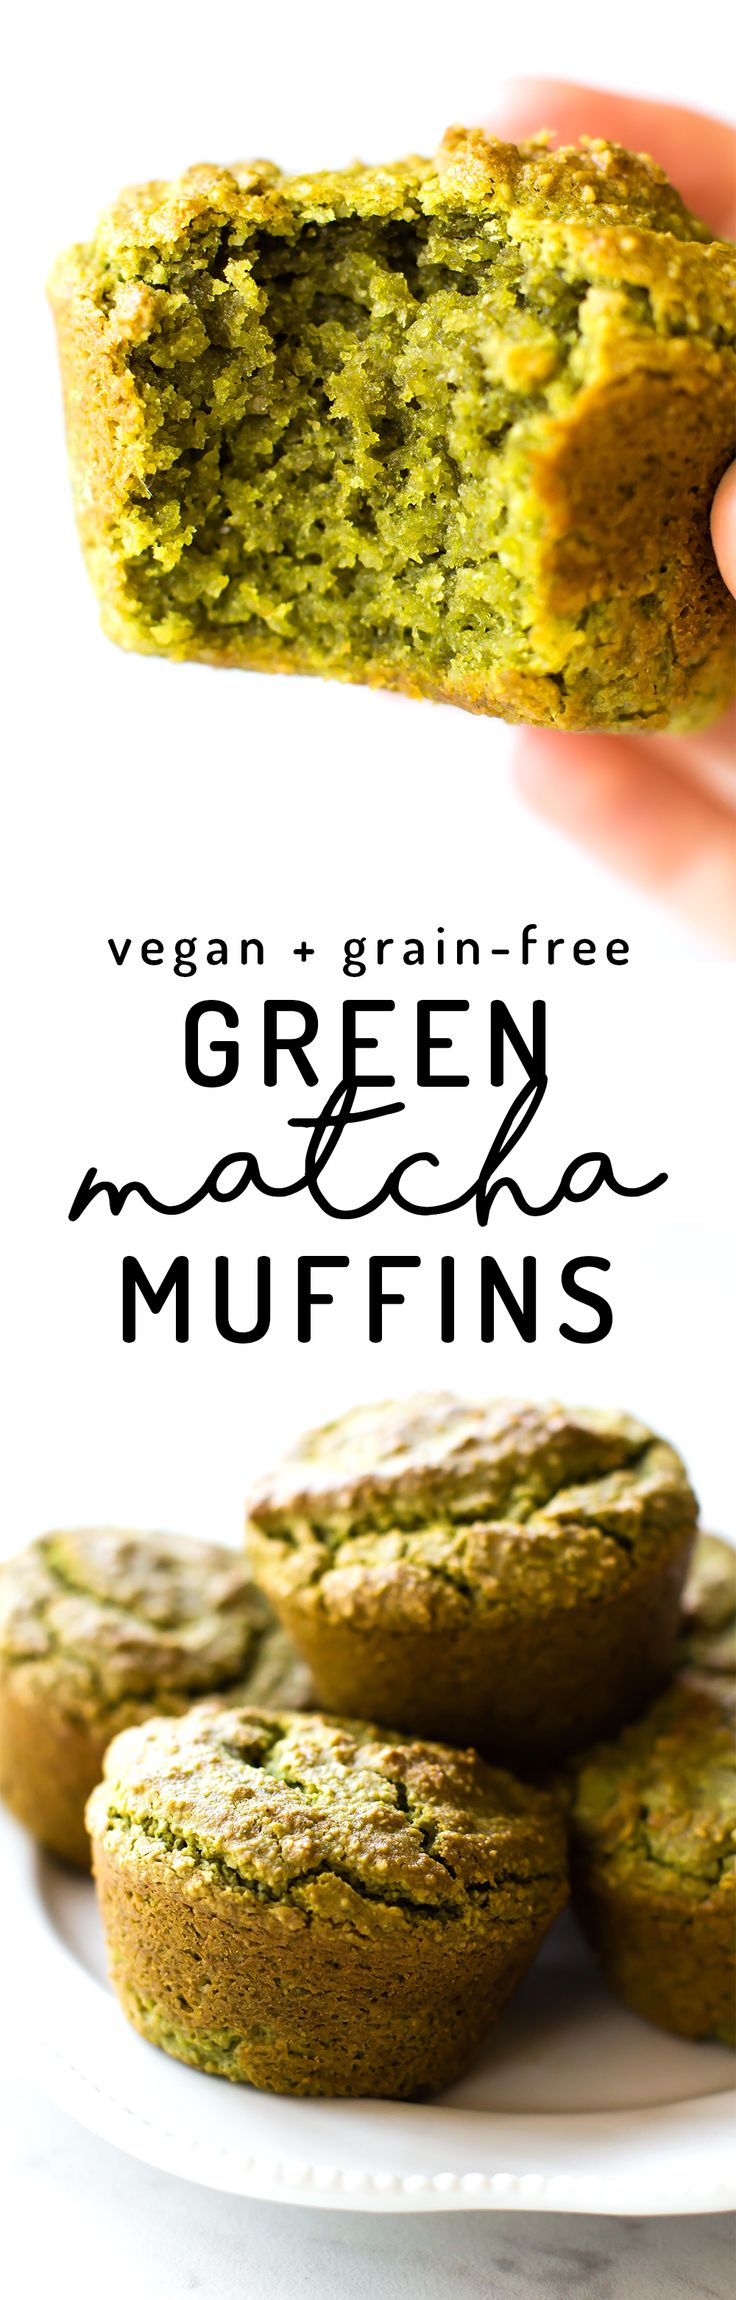 These vegan and grain-free Avocado Matcha Muffins are green tea superfood goodness packed into a soft and fluffy baked bundle for the perfect healthy snack!